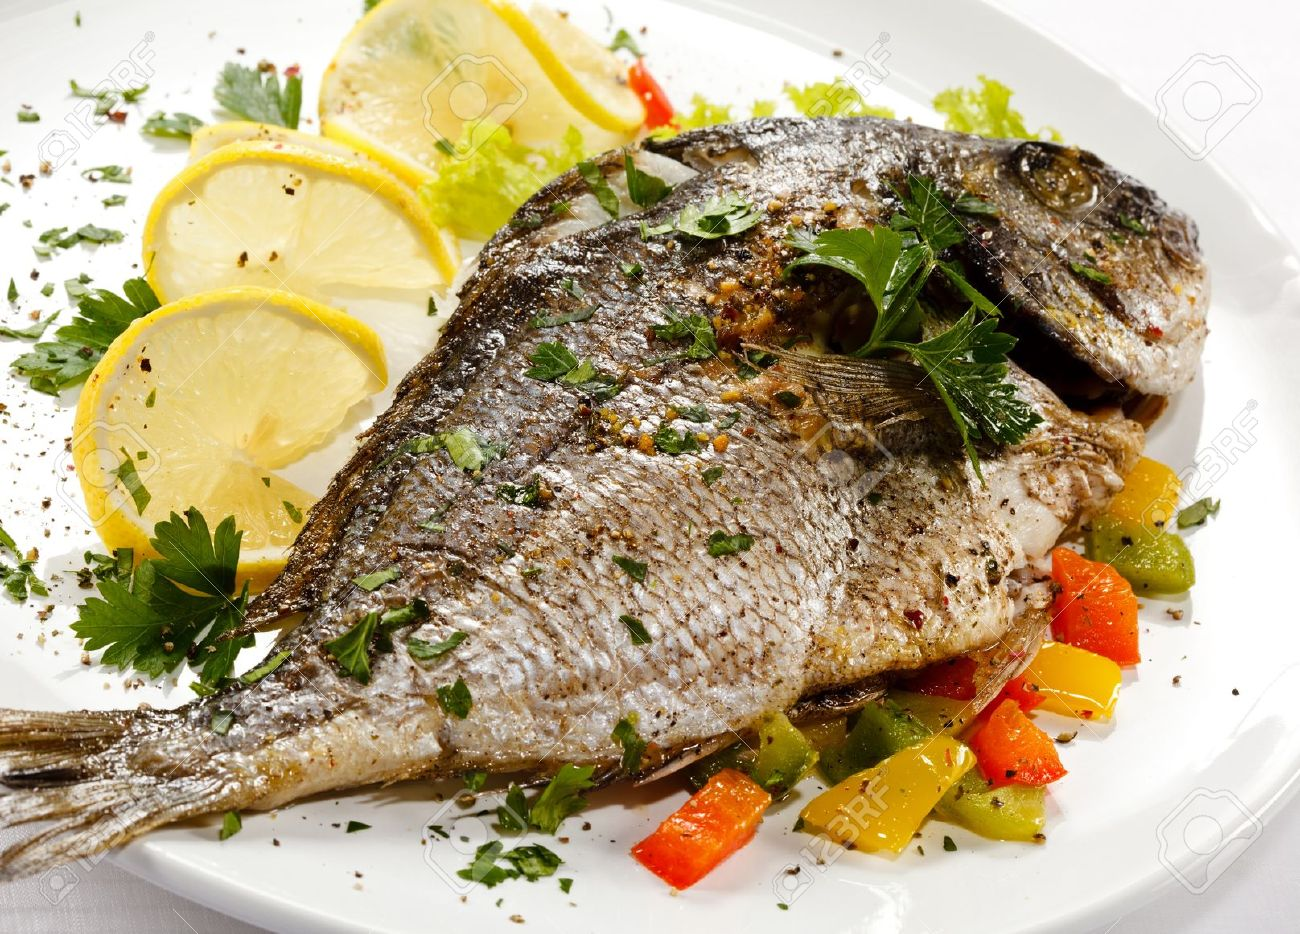 15564113-fish-dish-roasted-fish-and-vegetables-stock-photo-grilled